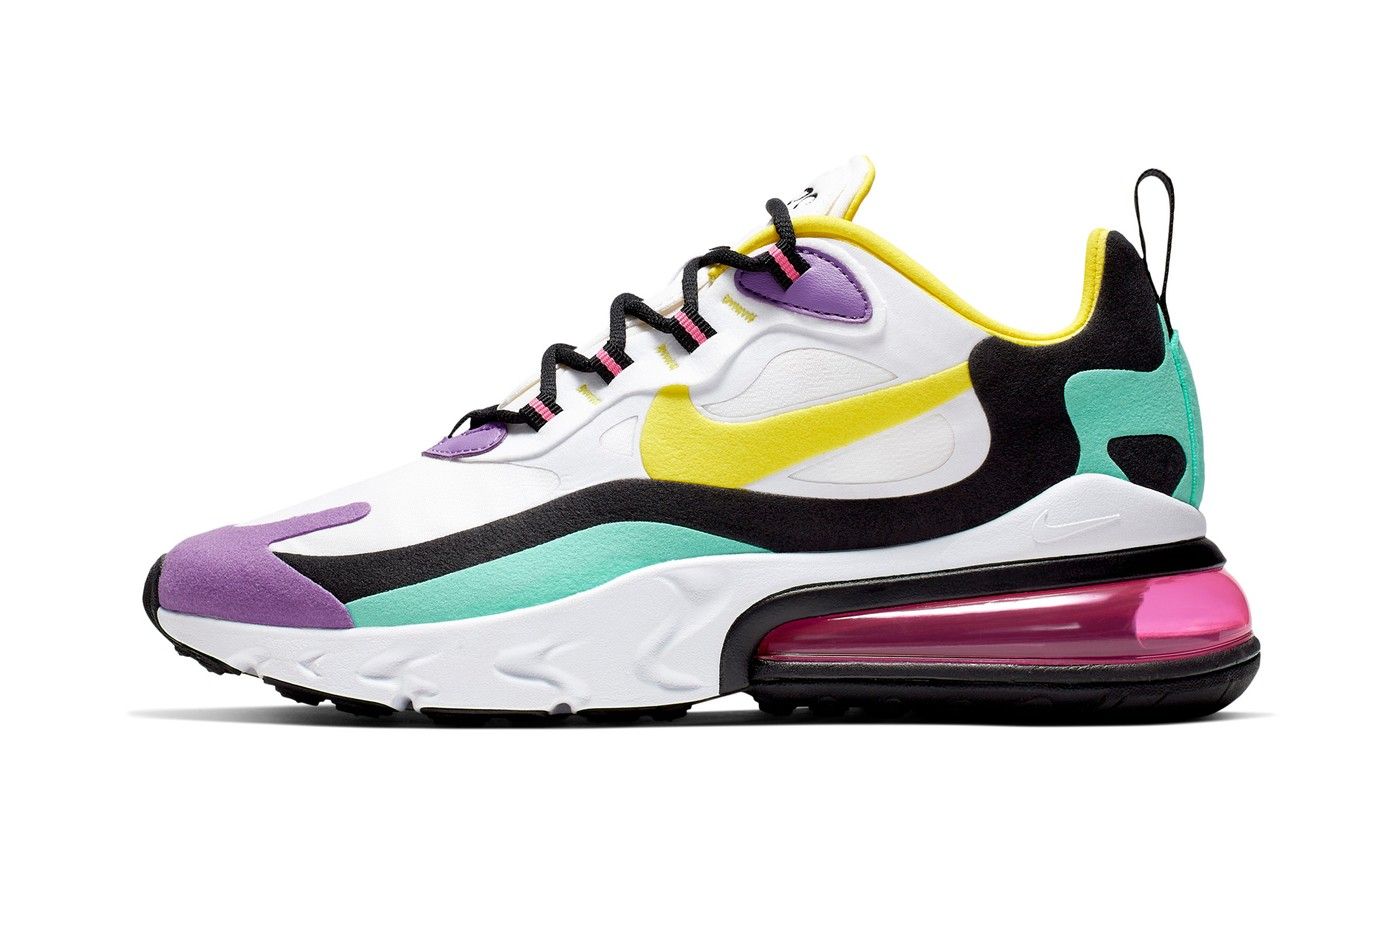 new concept 01961 c3b7f Introducing the Nike Air Max 270 React | The Source